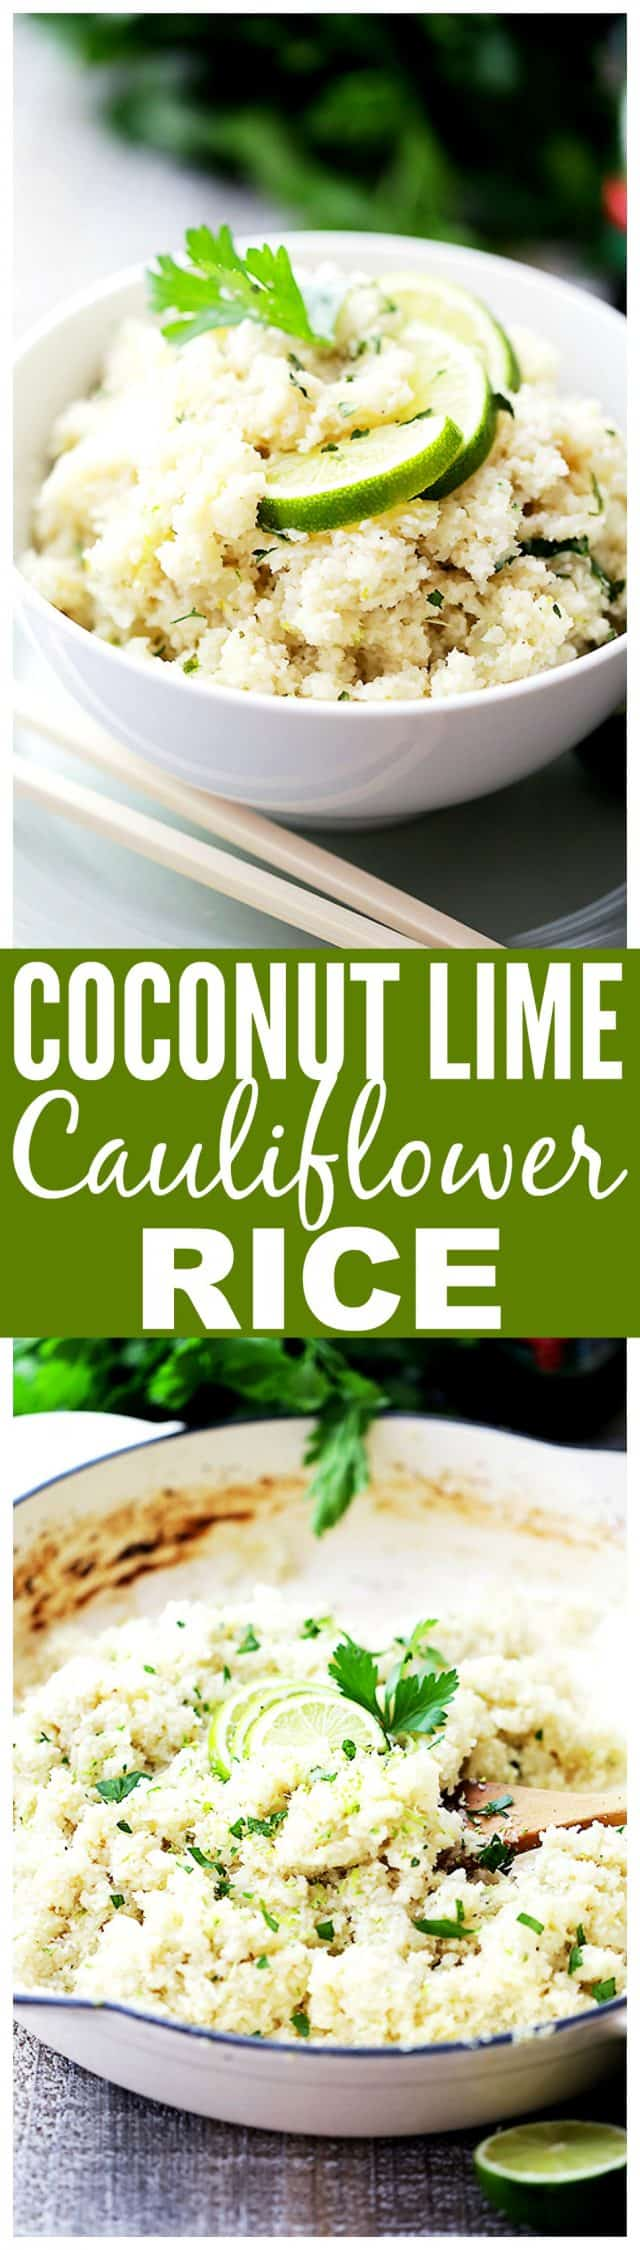 "Coconut Lime Cauliflower ""Rice"" - Cauliflower rice cooked in coconut milk and loaded with fresh lime juice and lime zest! This is the ideal healthy side dish to any meal!"